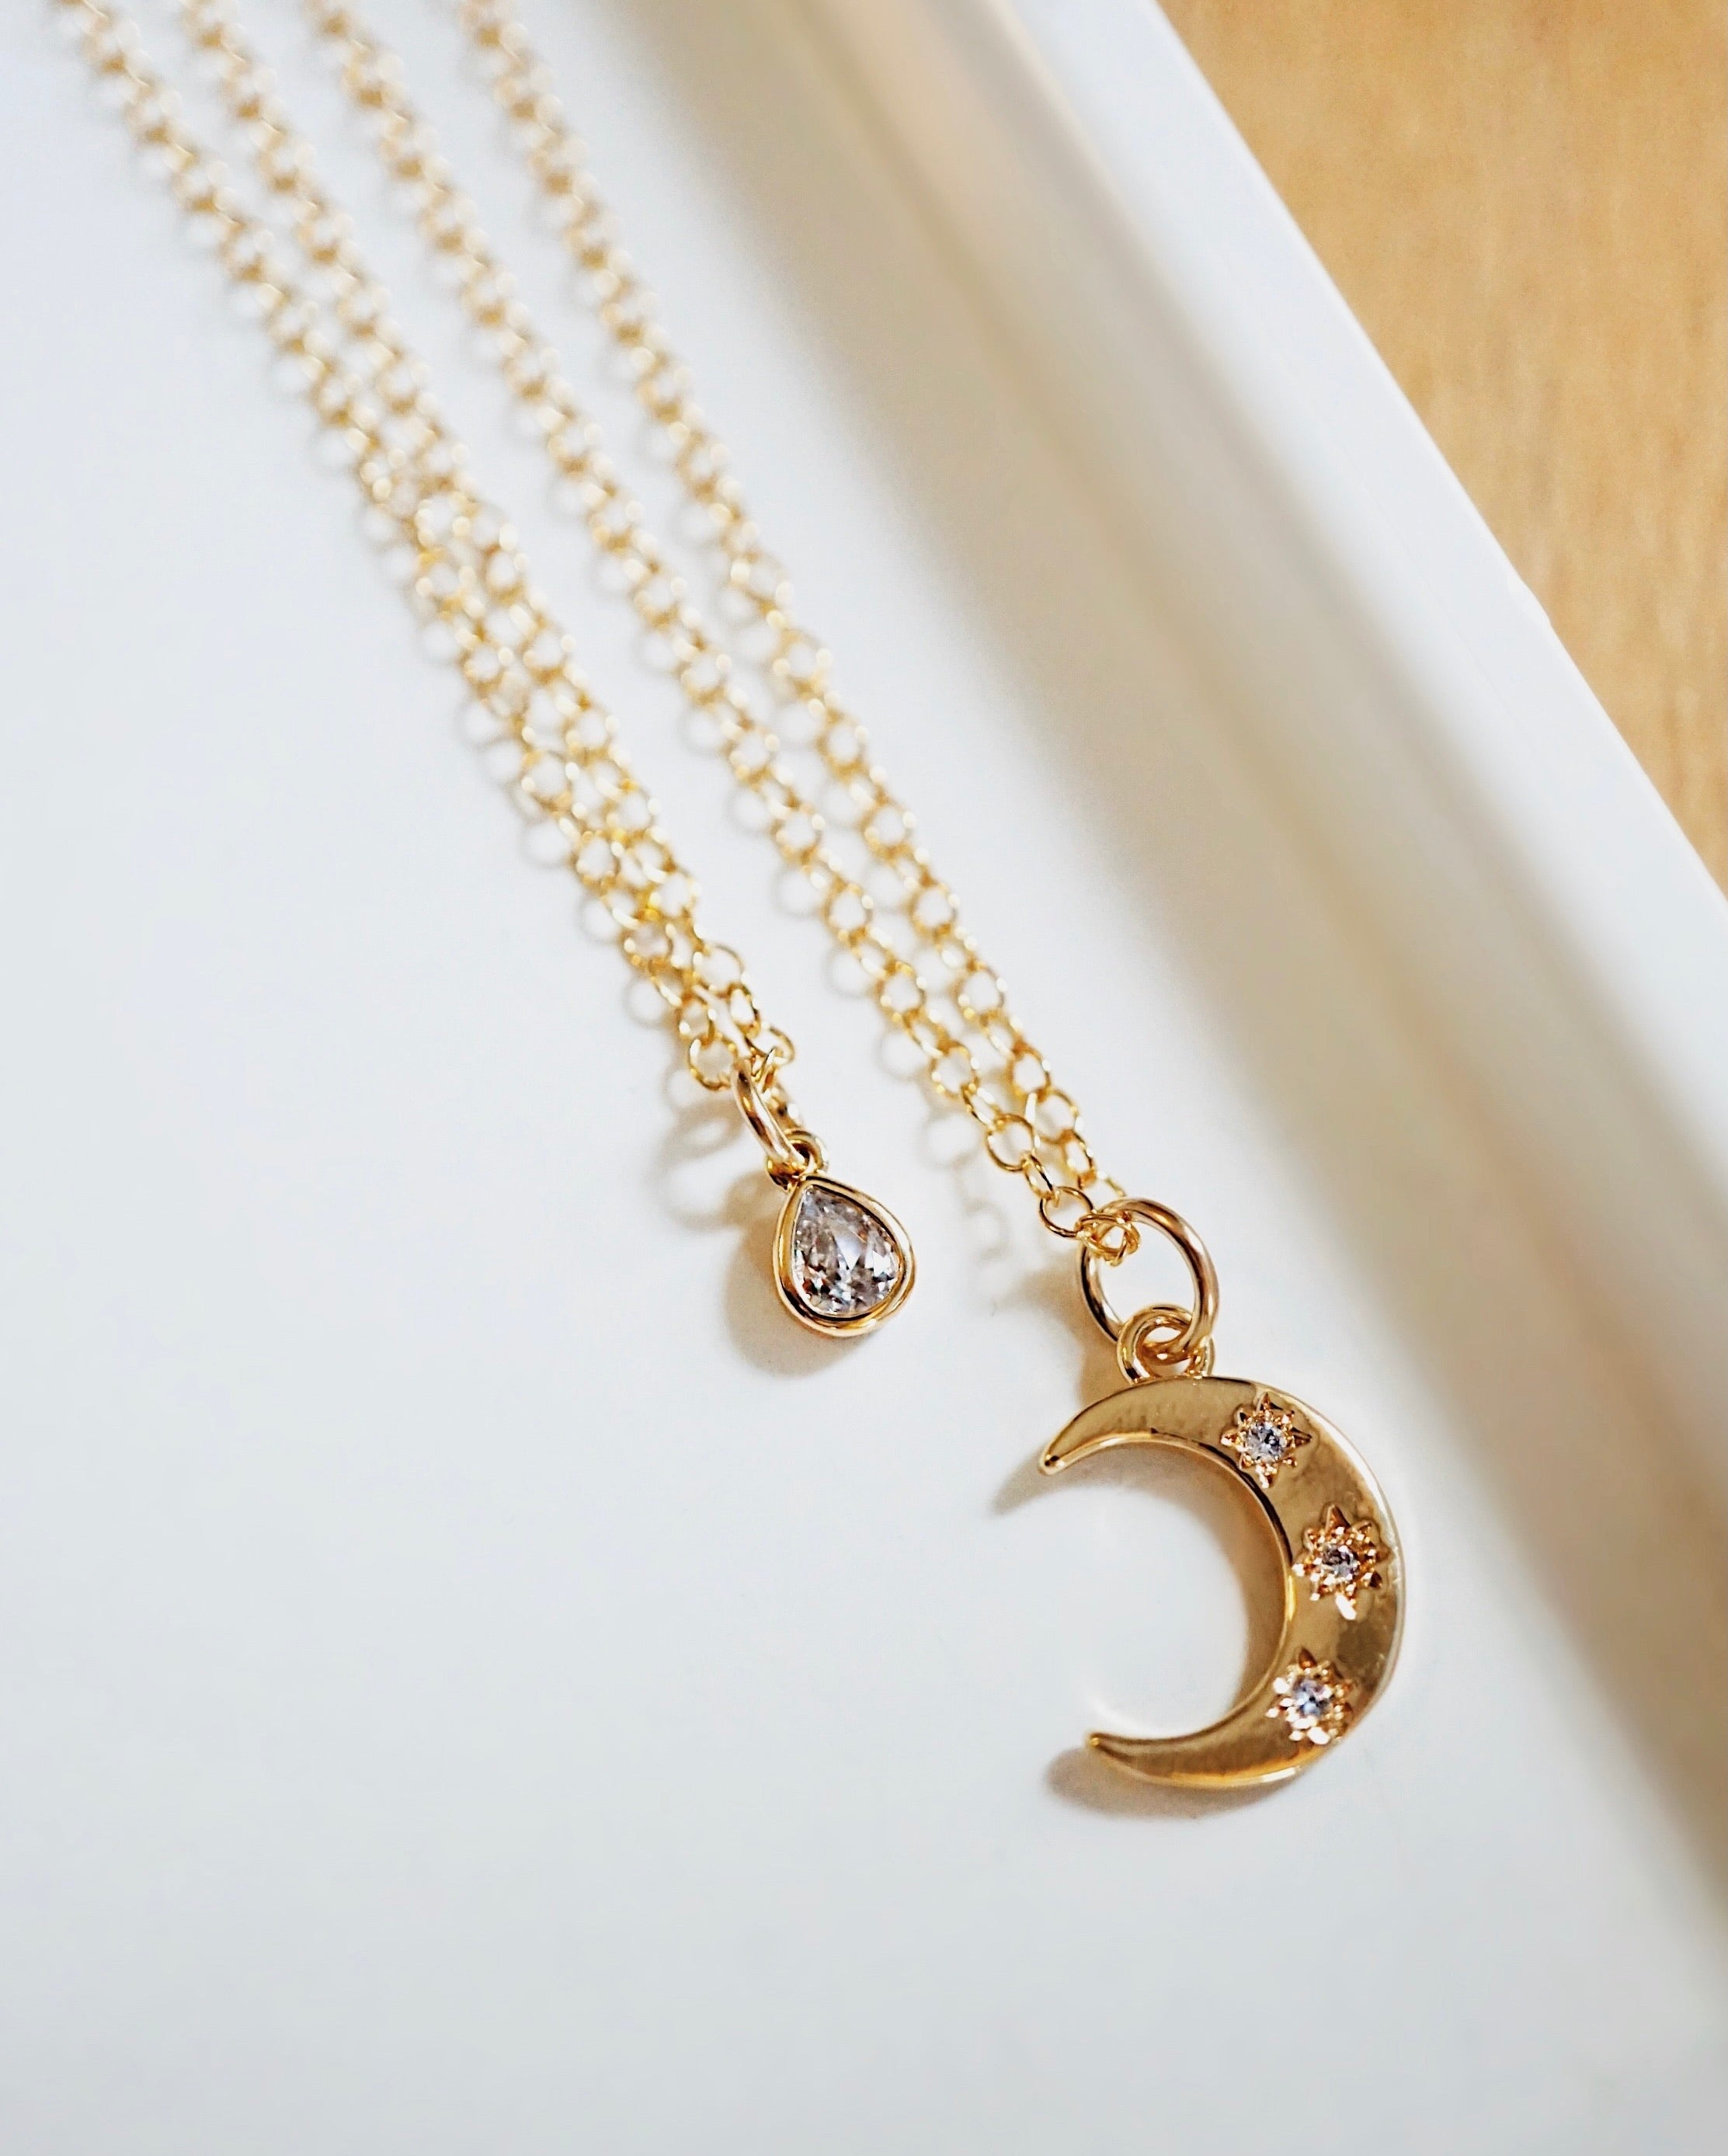 DROPLET ✶ Celestial Collection ✶ Dainty Teardrop Necklace + Lava Charm